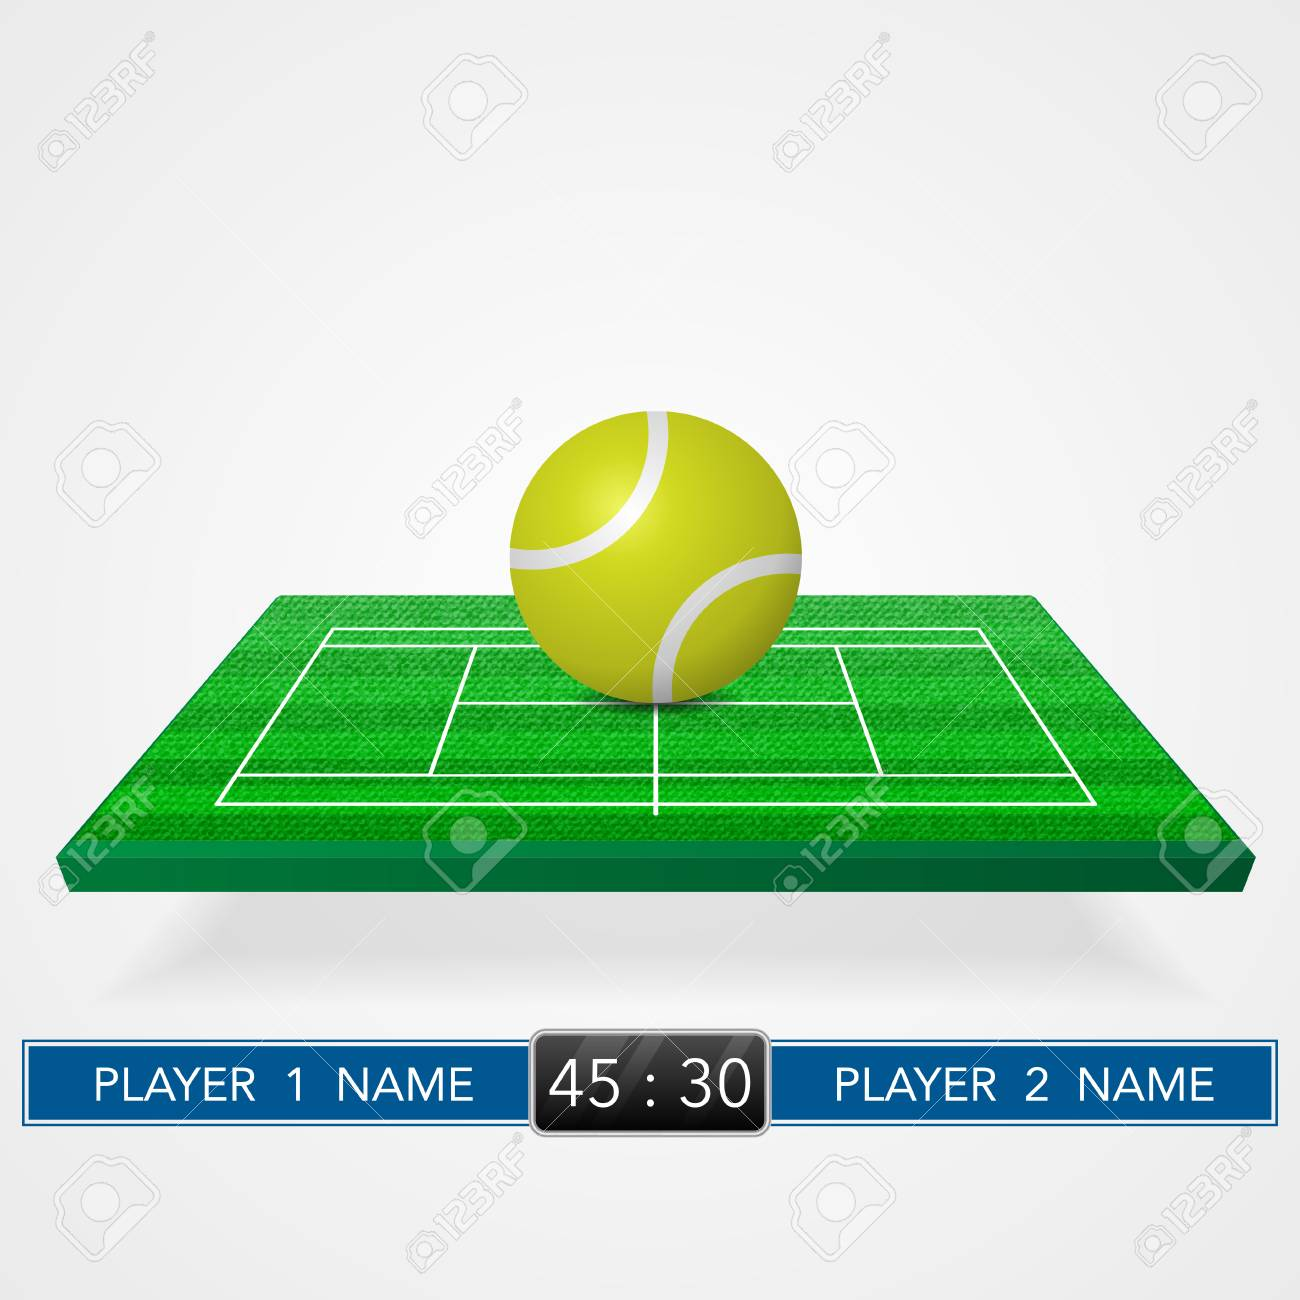 Tennis Court Background Royalty Free Cliparts Vectors And Stock